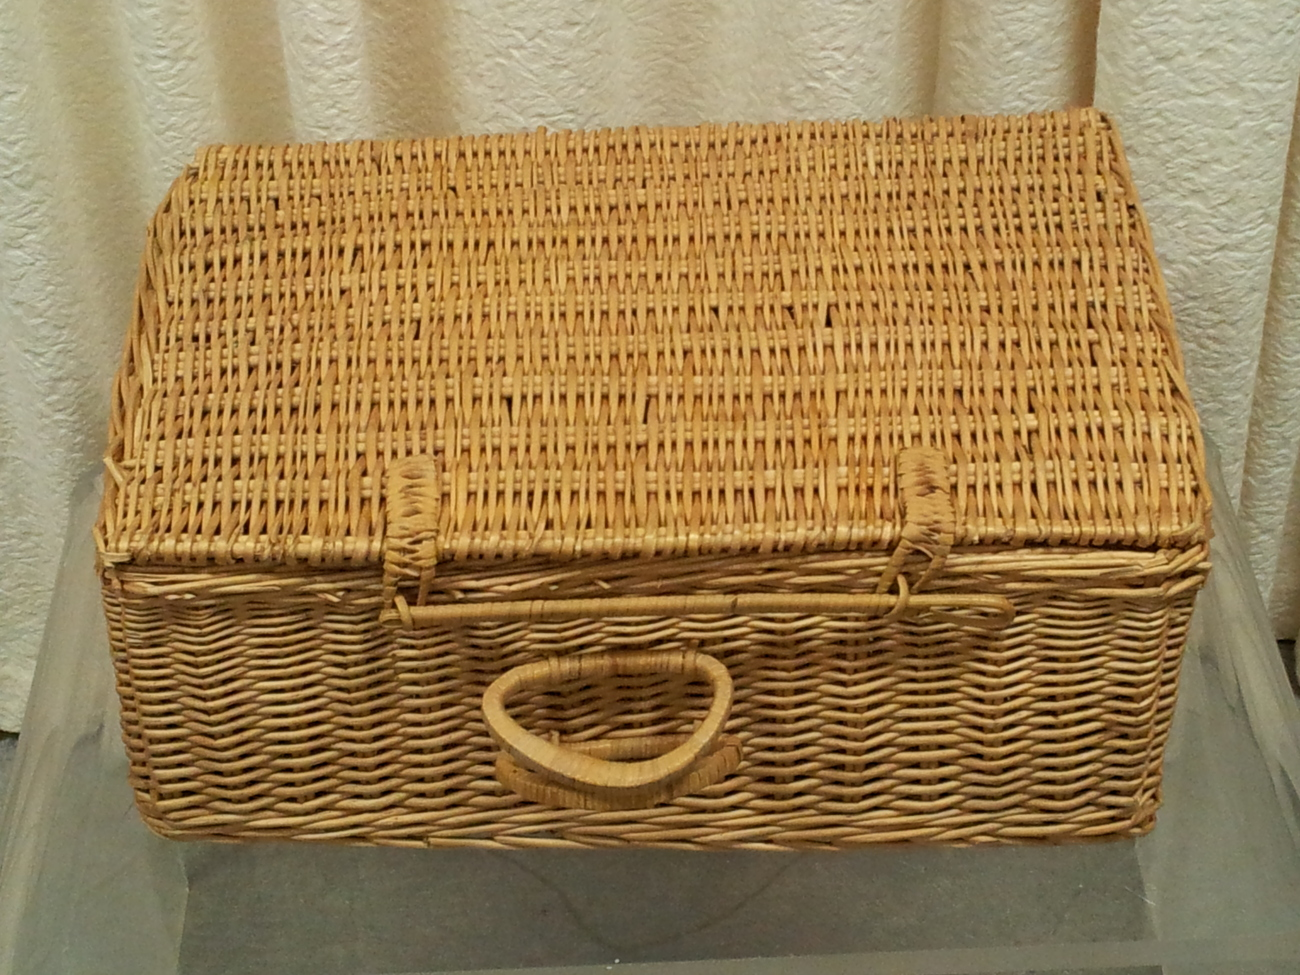 Wicker Suitcase Style Picnic Basket